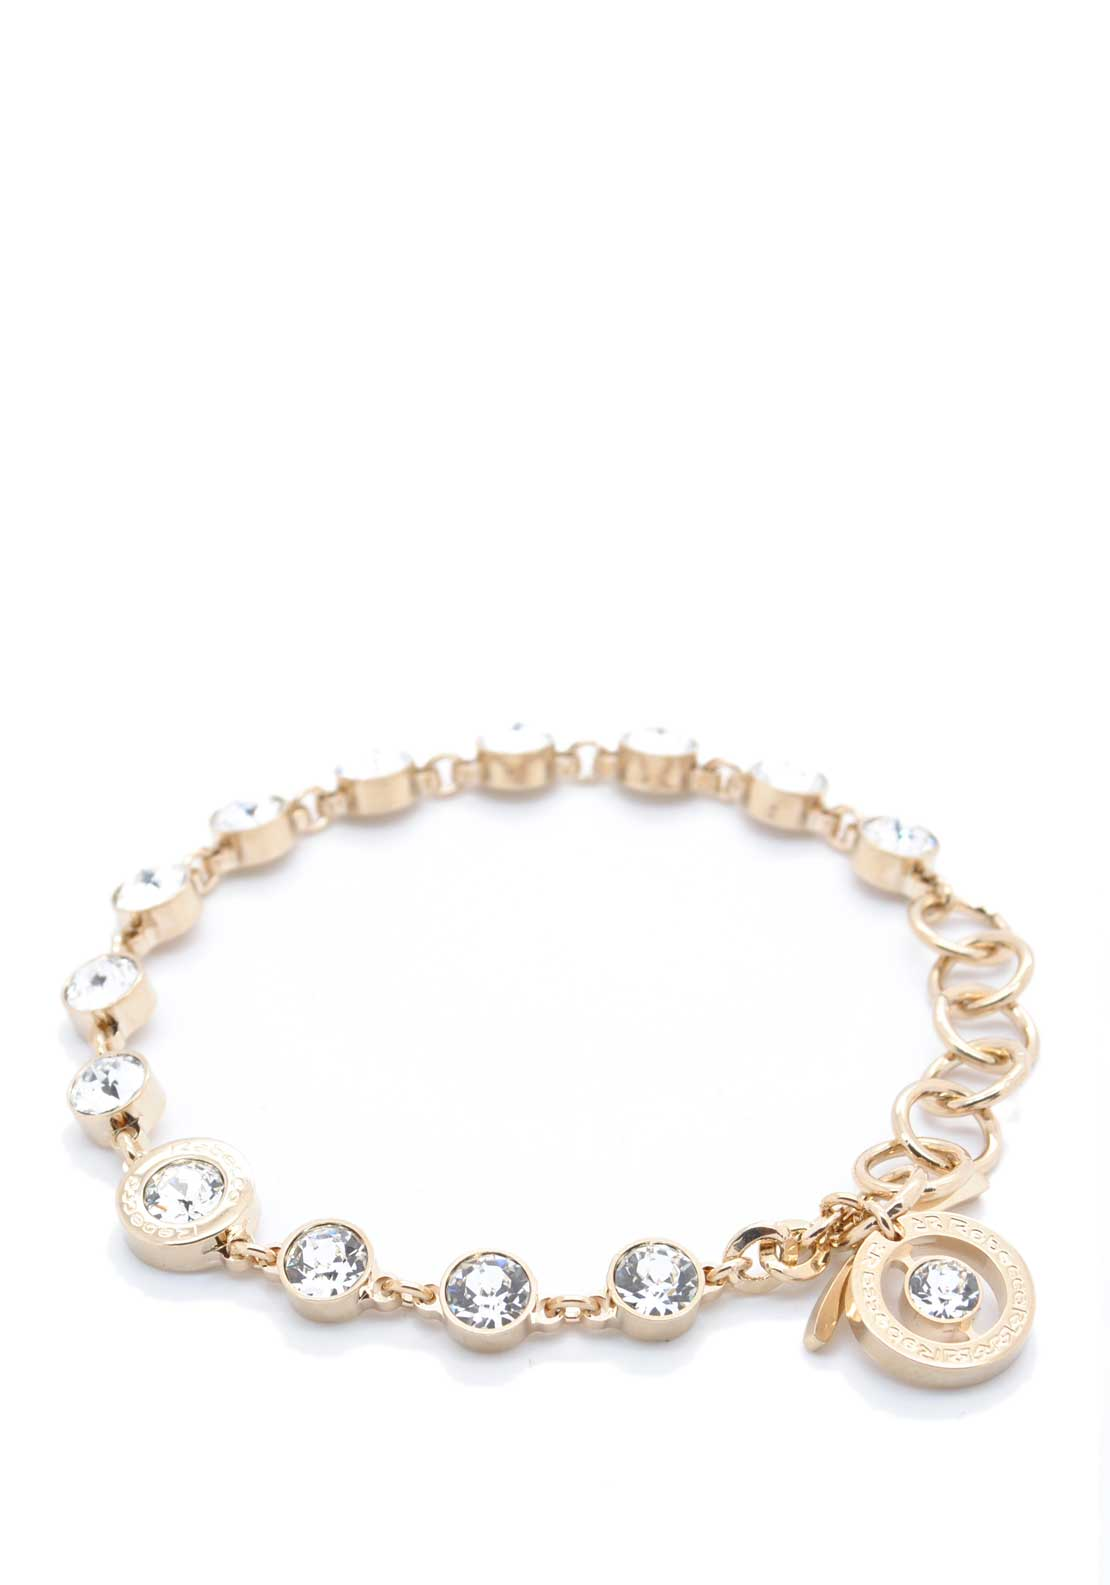 Rebecca Yellow Gold Double Row Crystal Link Bracelet, Gold